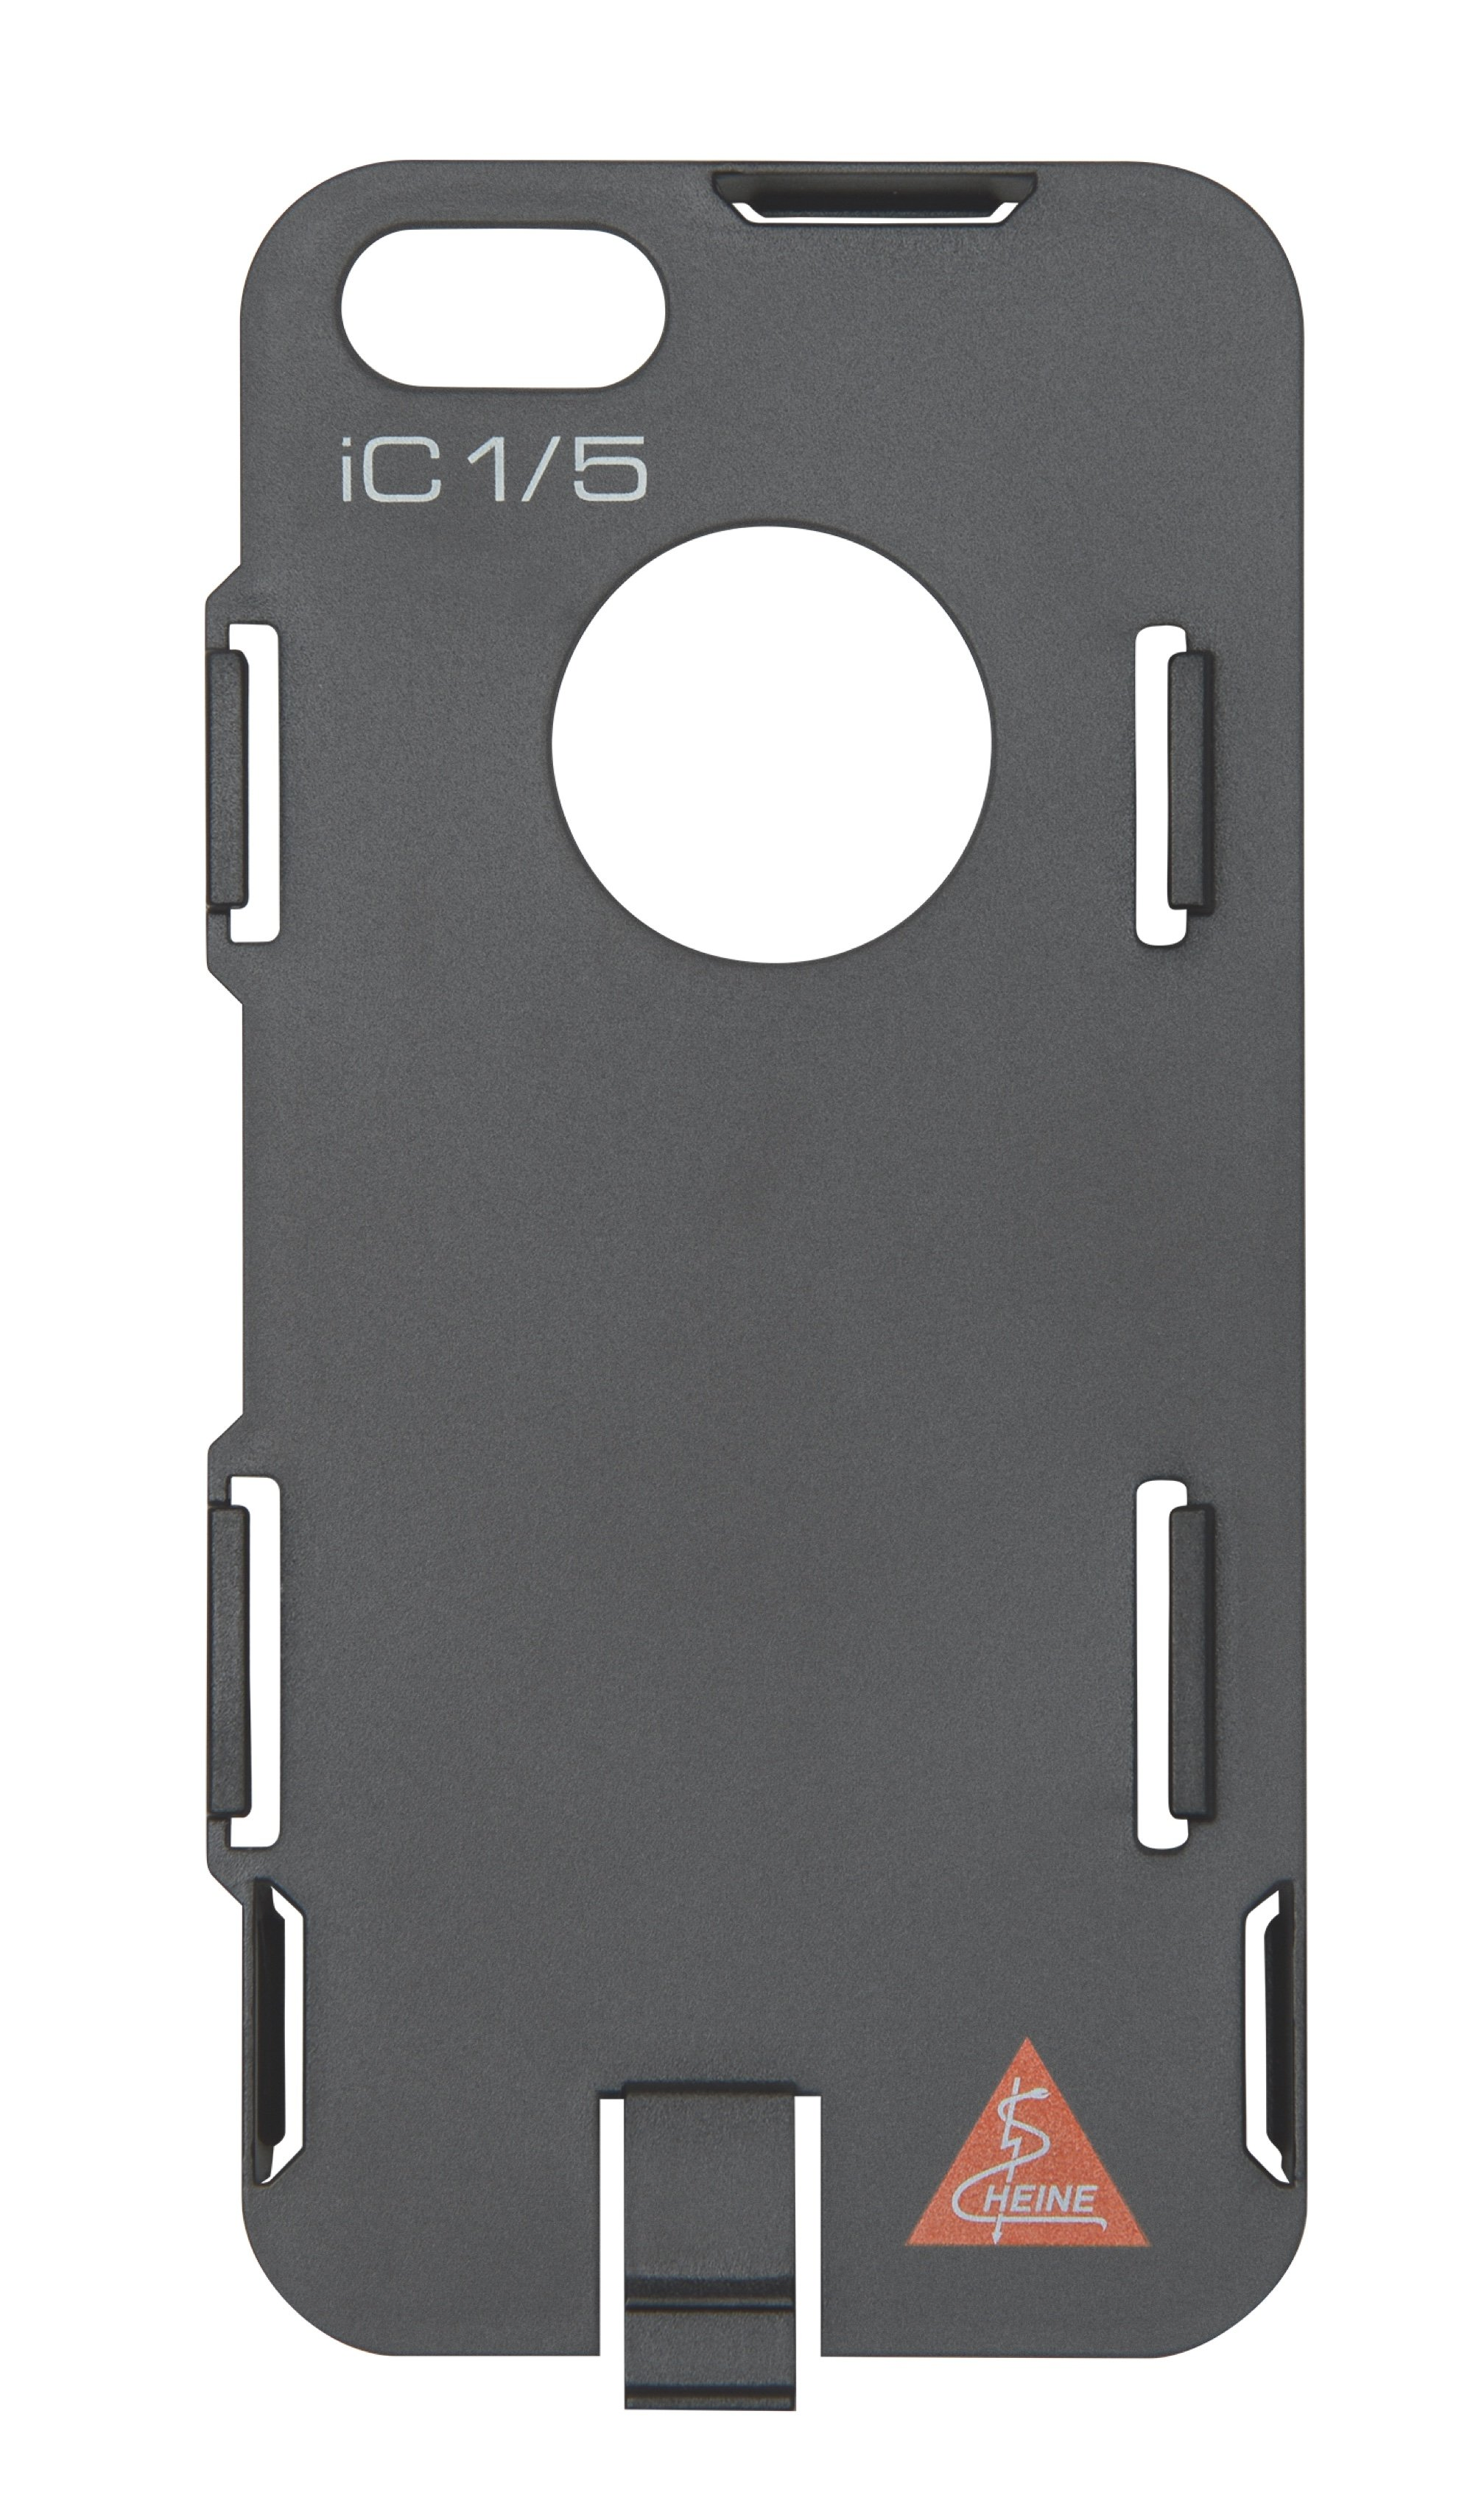 HEINE iC 1 Mounting Case for iPhone 5/5s/SE